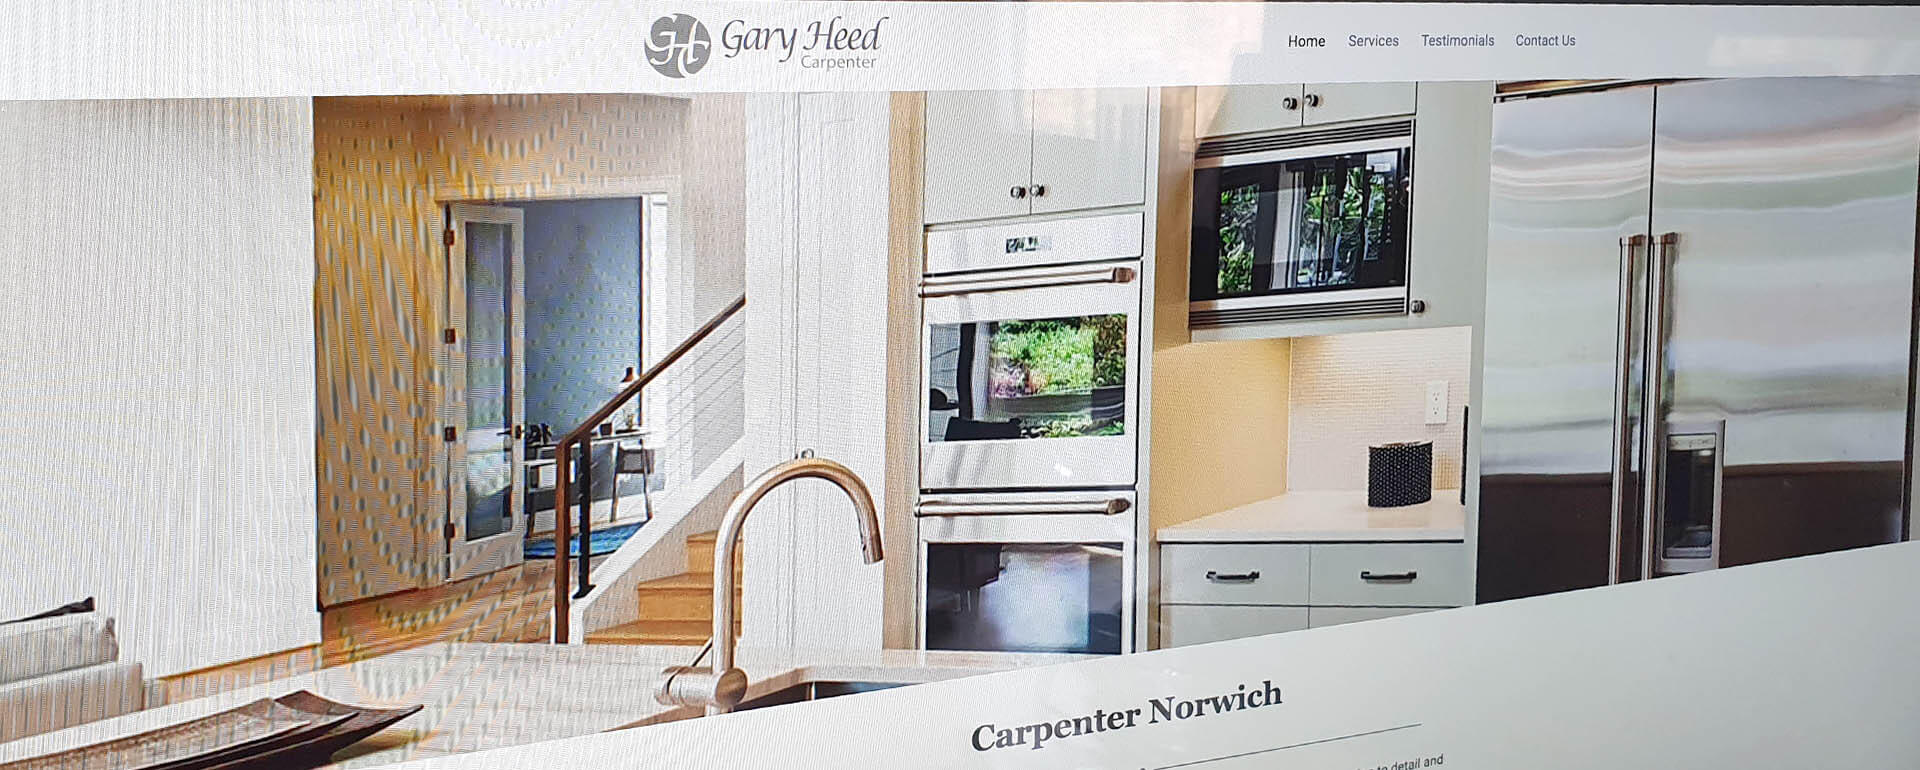 Web site Design Carpenter Norwich